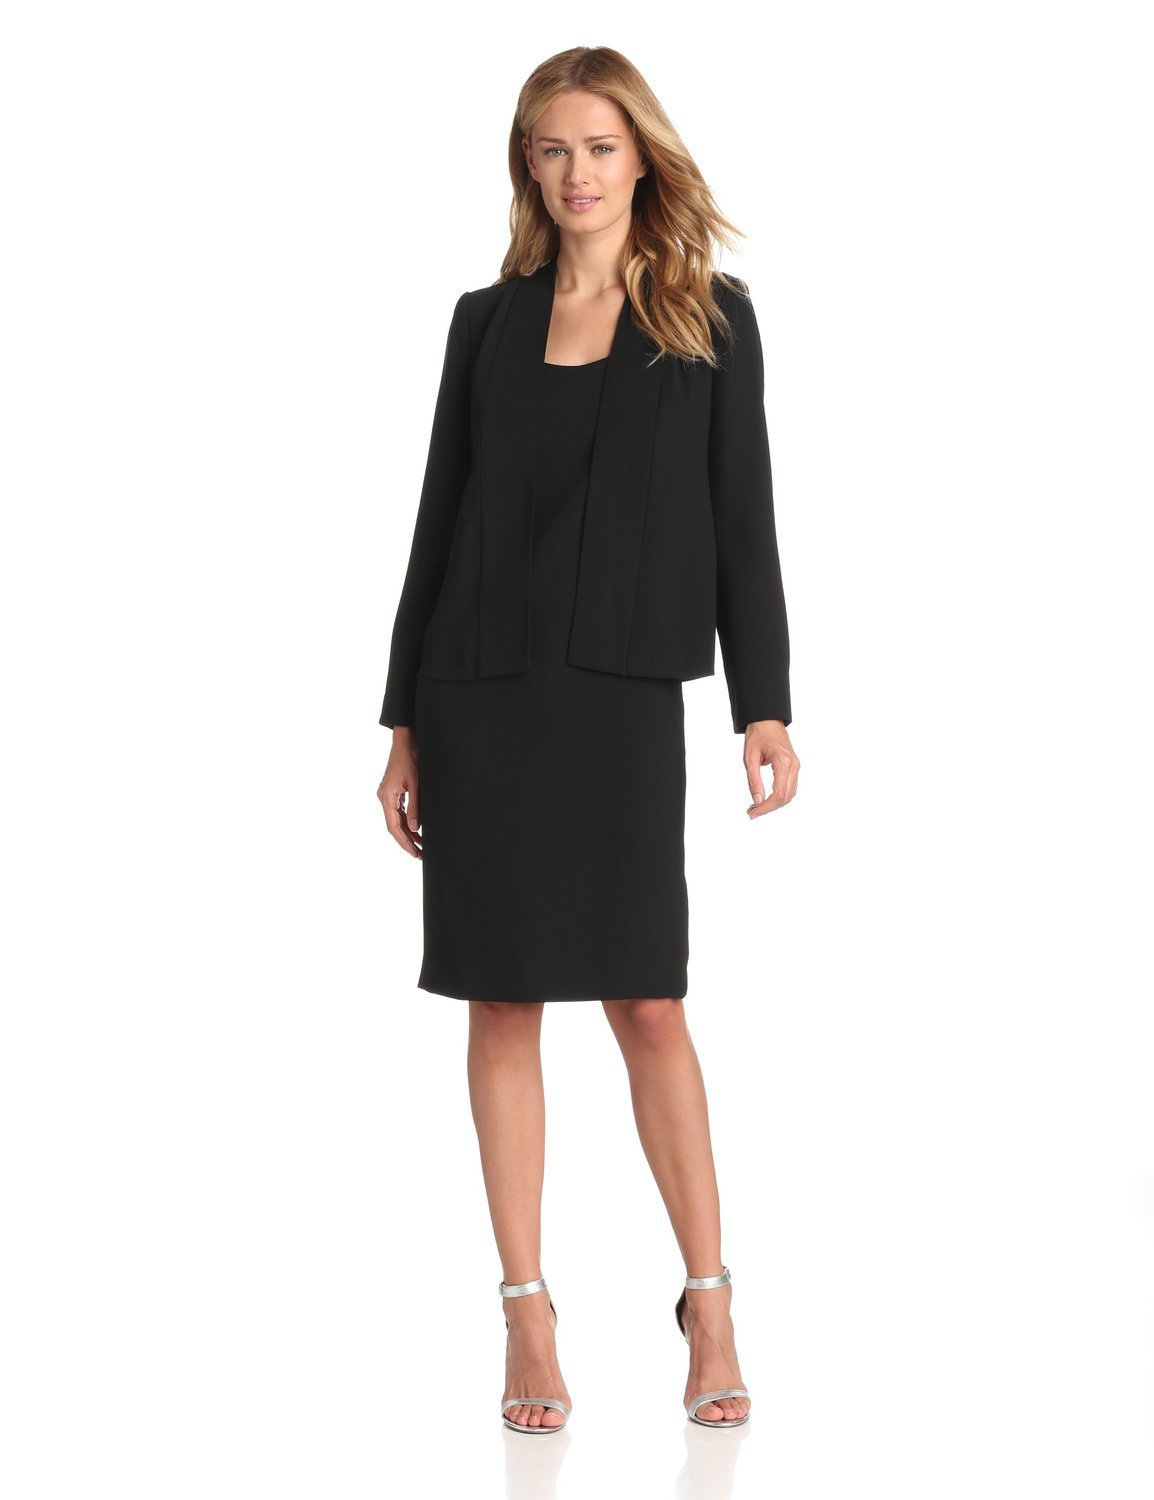 For chic women's suits, workwear, and office attire look no further than Dillard's Work Shop. Make Dillards your destination for your wear to work needs such as women's work dresses, blazers, suits.